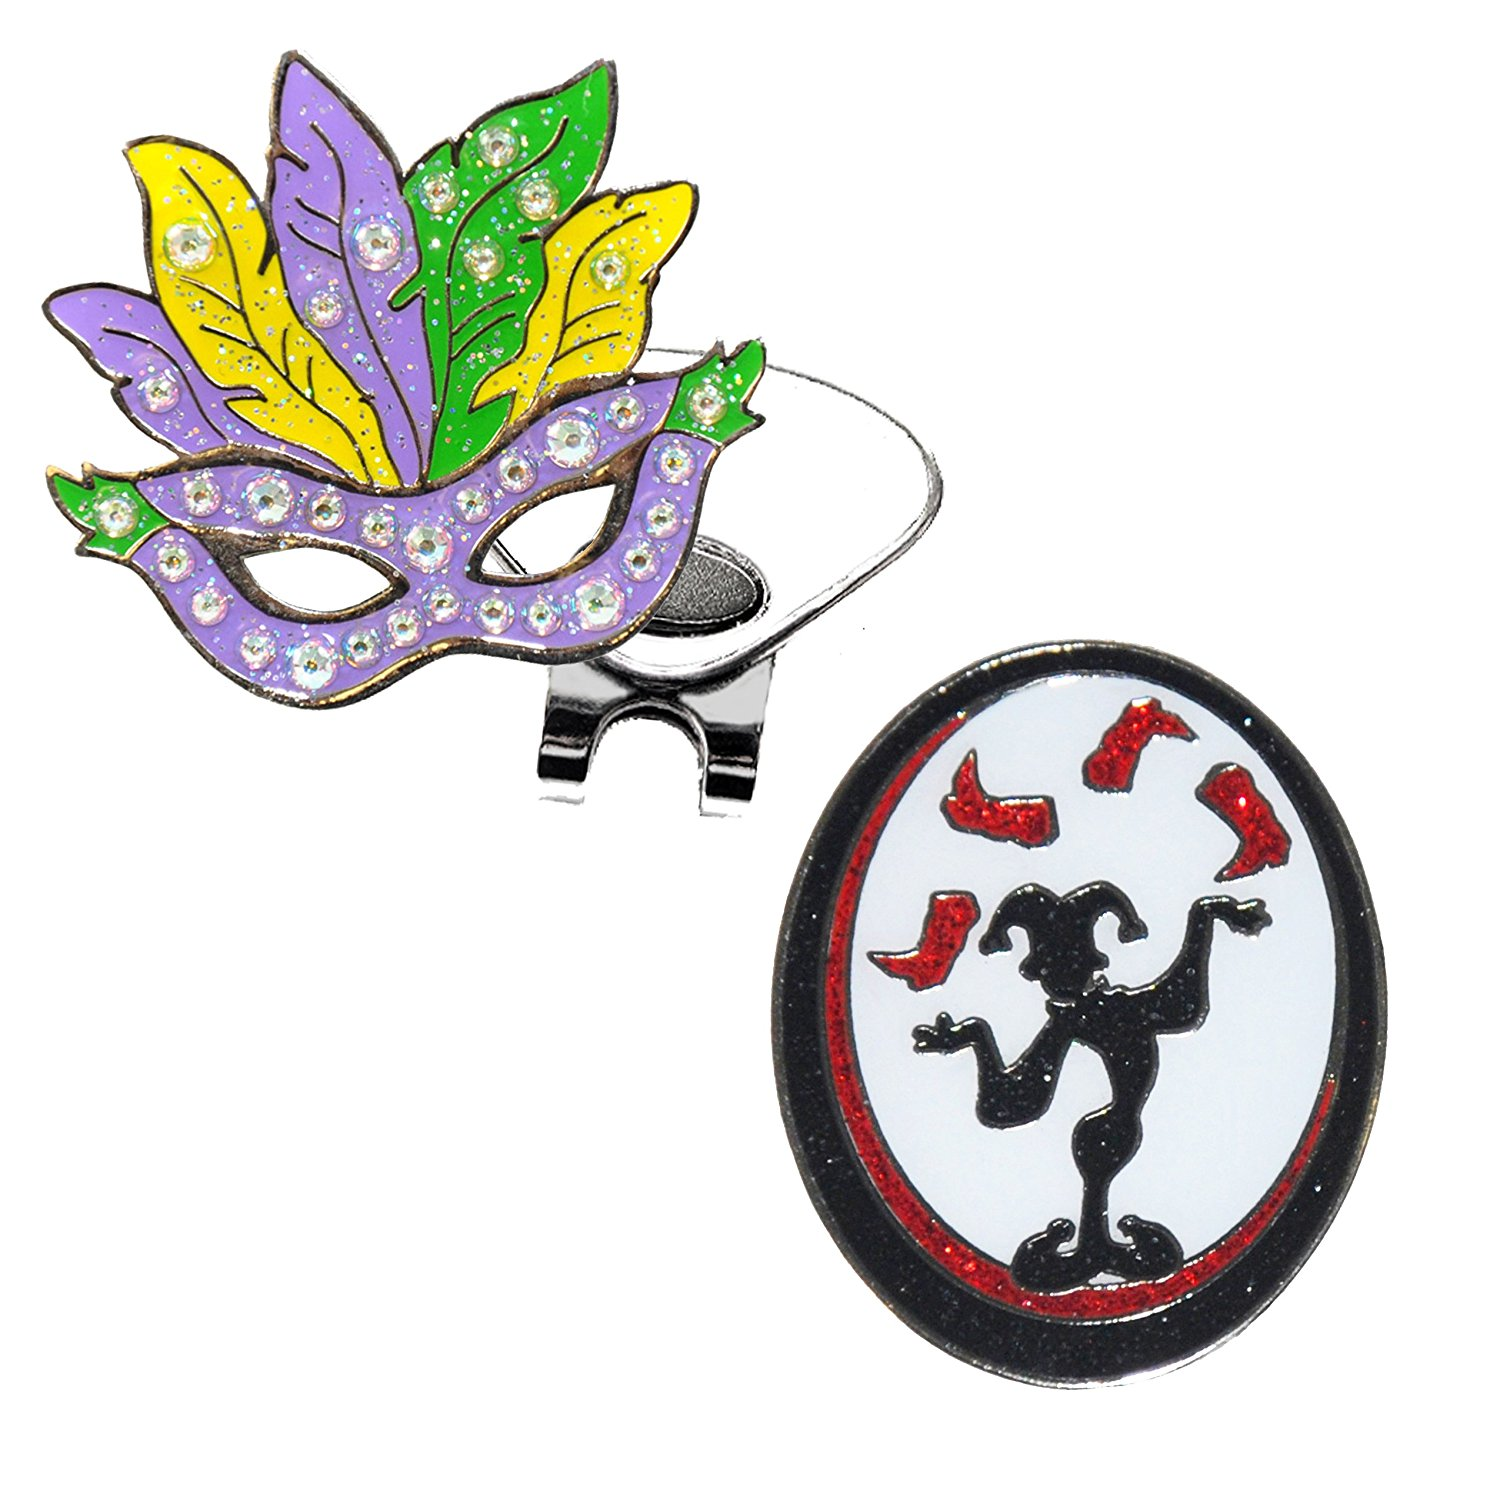 Navika Mardi Gras Mask Crystal Ball Marker Accented By Genuine Swarovski Crystals and GLITZY Juggler Ball Marker with ONE Magnetic Hat Clip